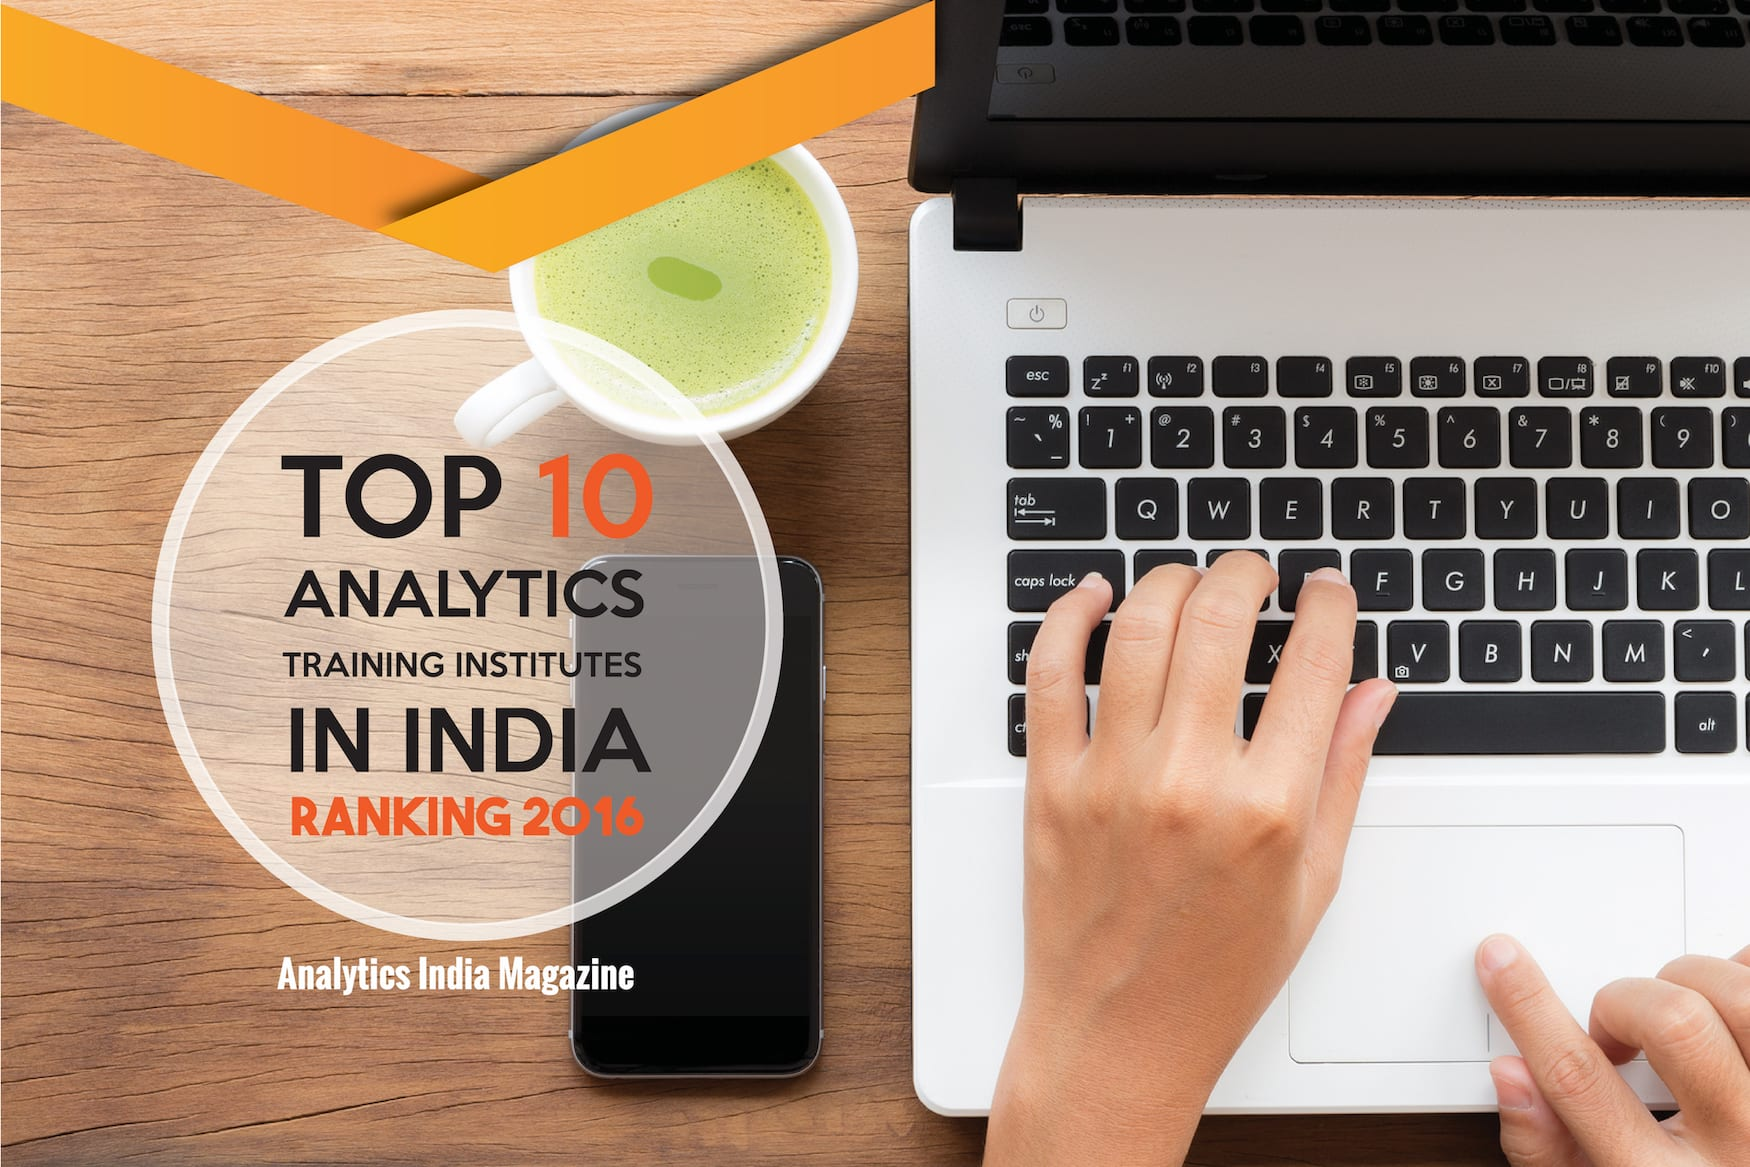 Top 10 analytics data science training institutes in india top 10 analytics data science training institutes in india ranking 2016 1betcityfo Images